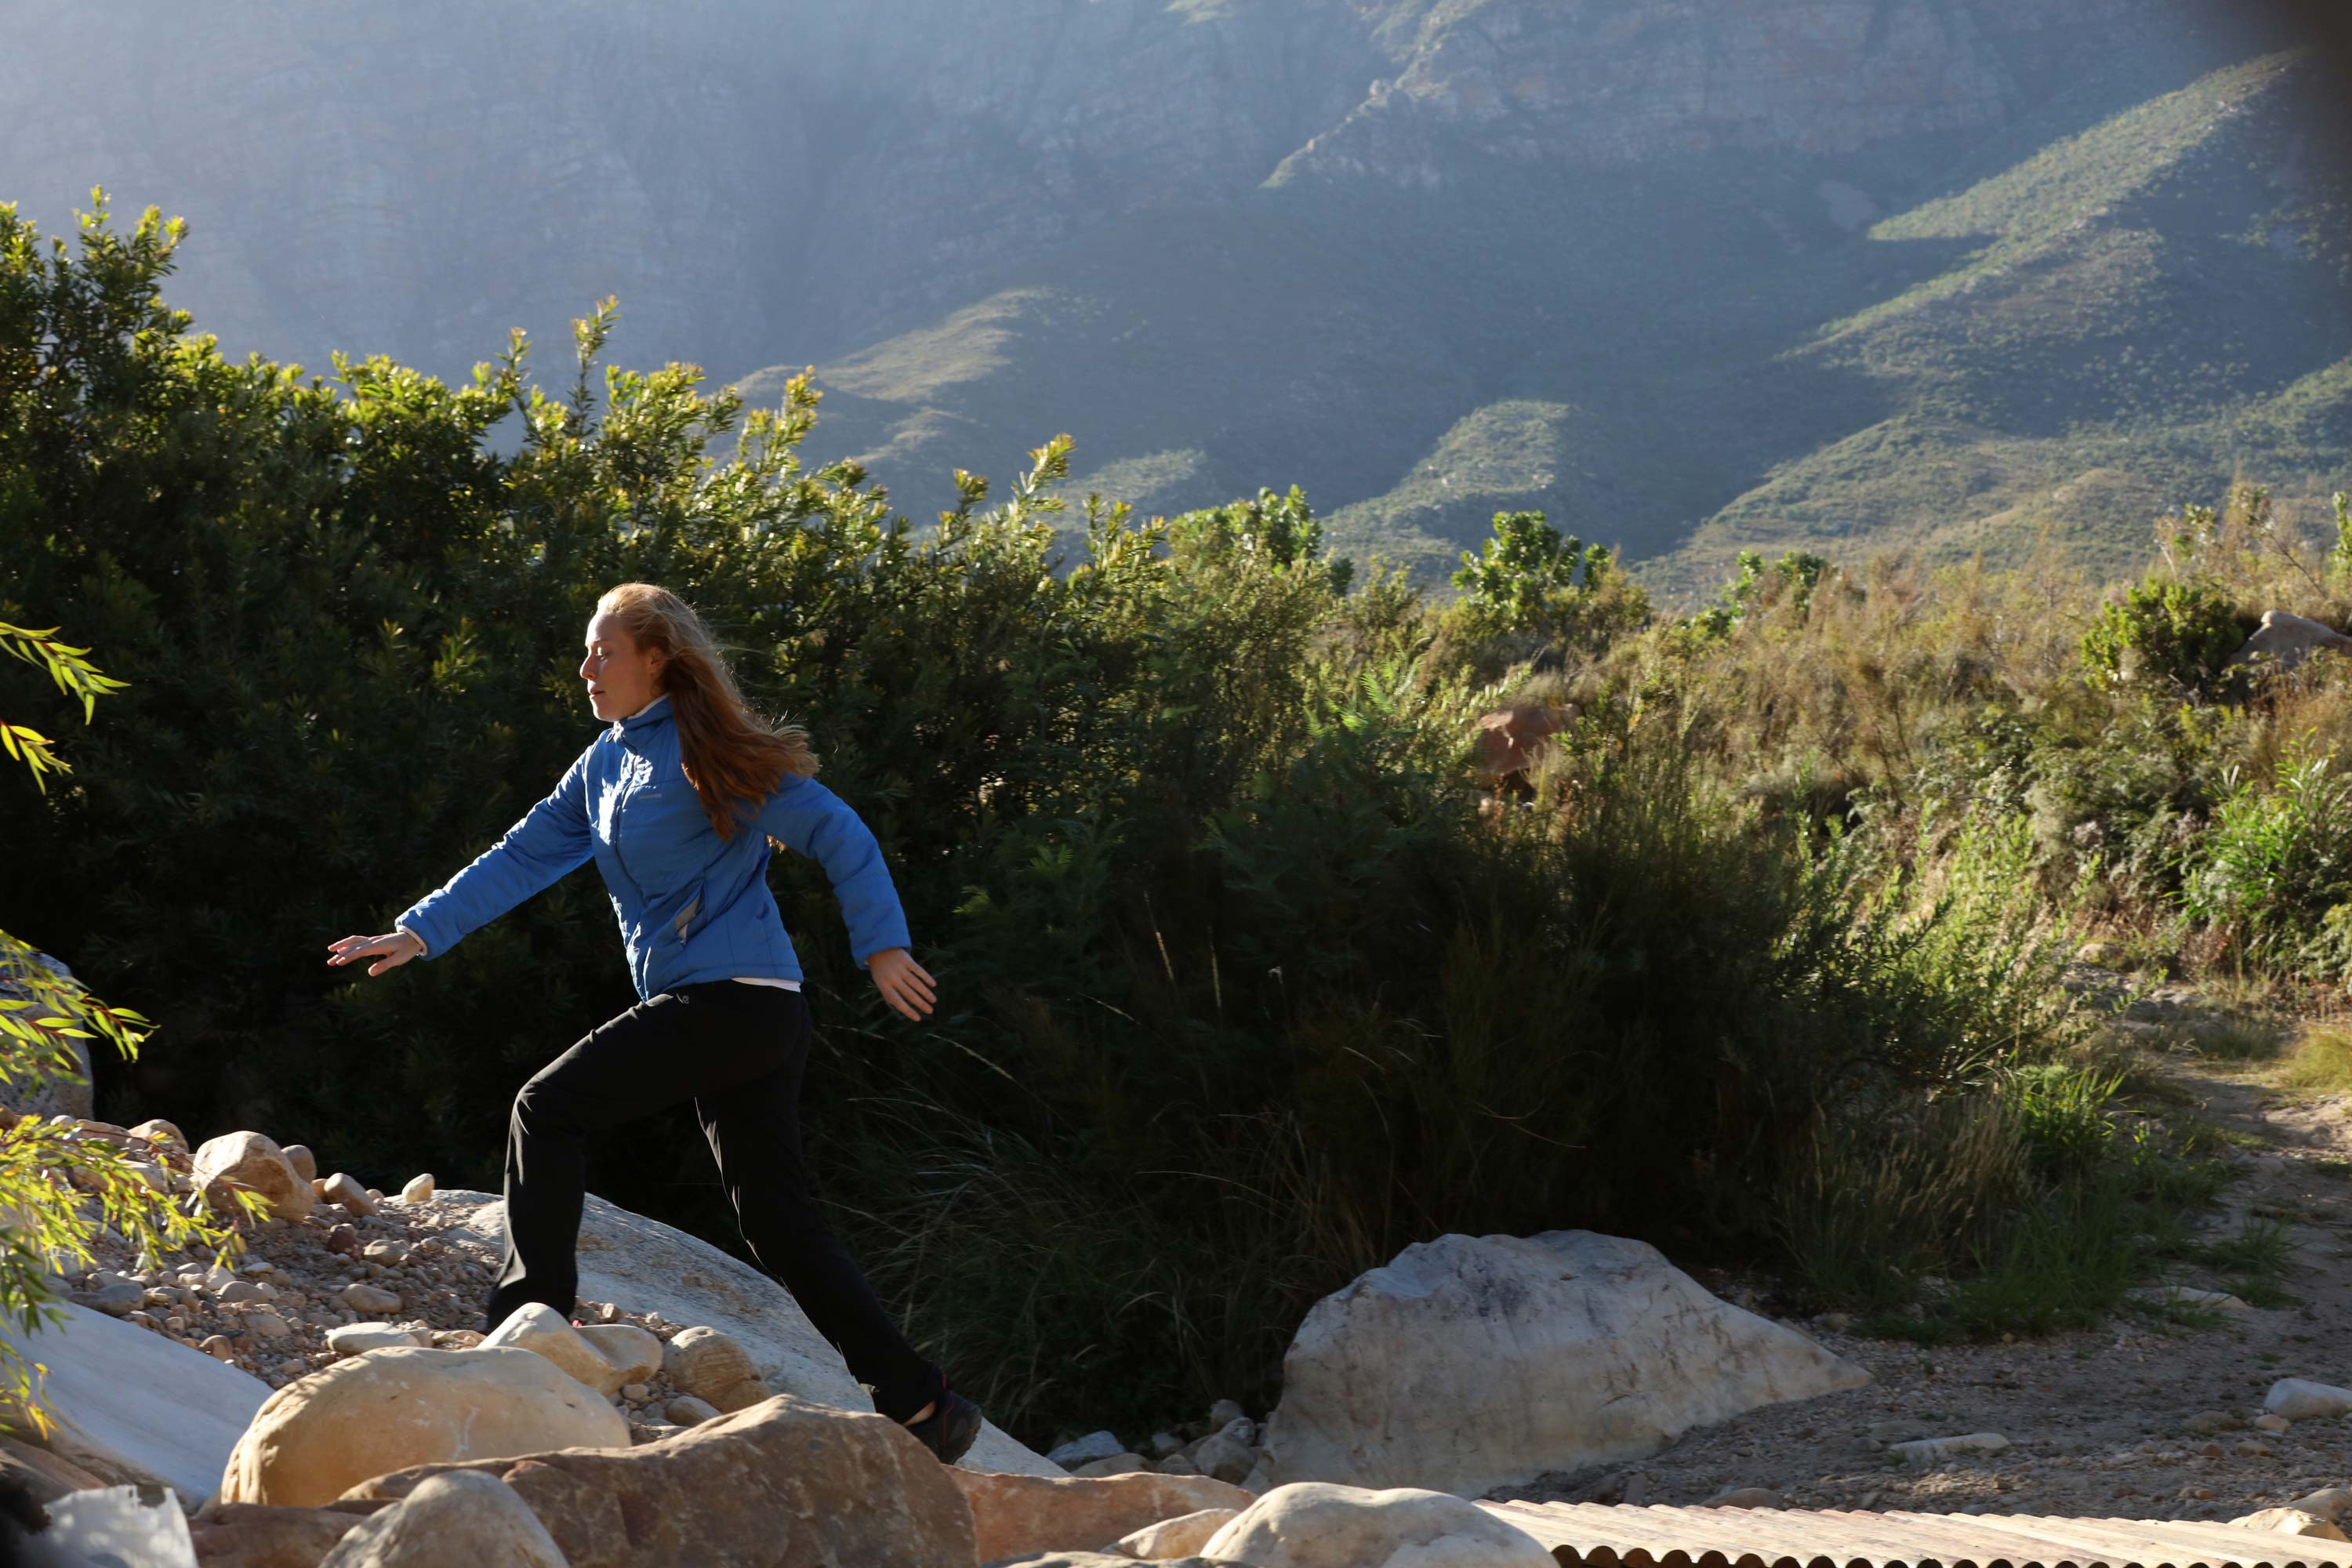 Woman running in mountains wearing compresslite packaway jacket